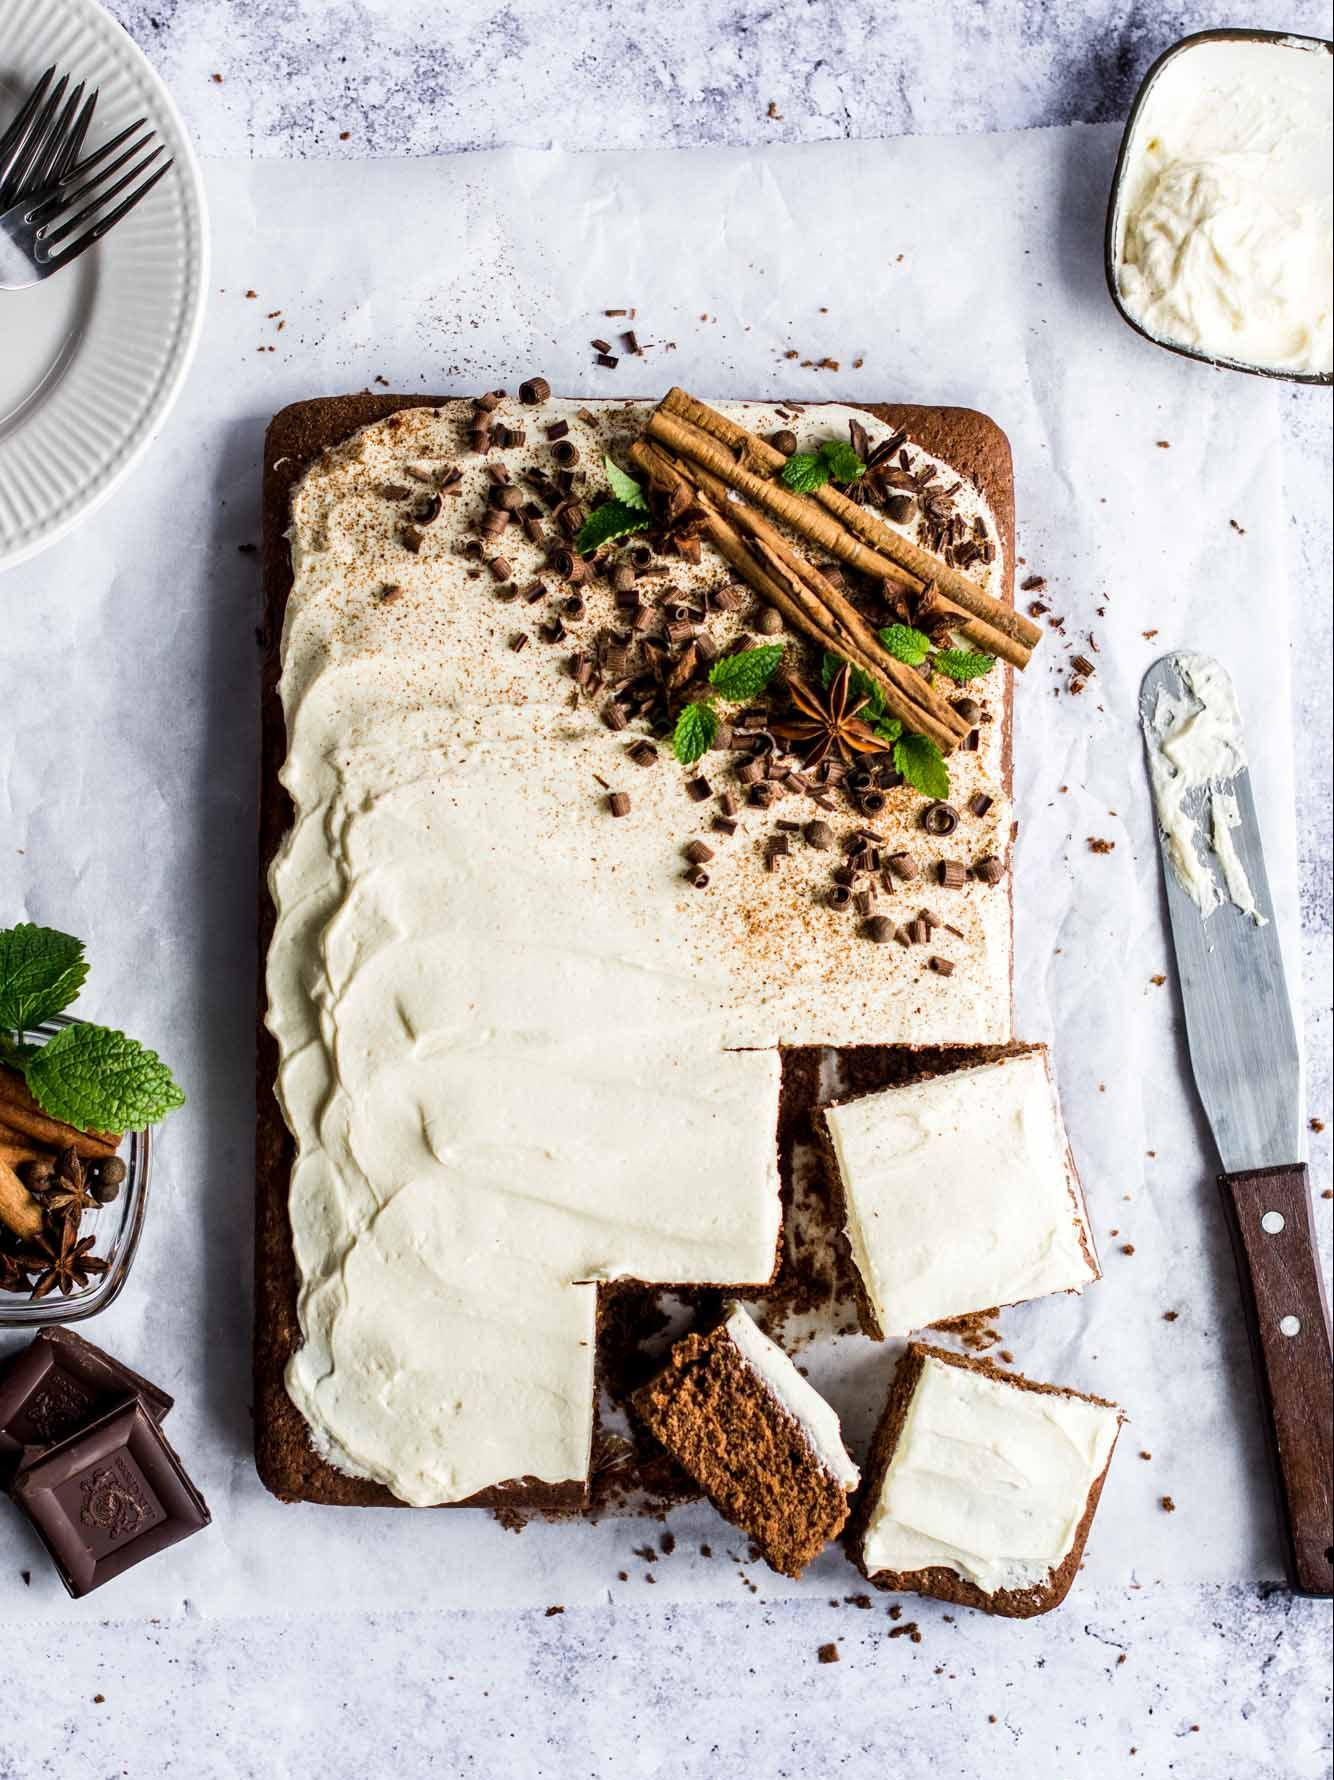 Spiced Chocolate Cake with Rum Frosting